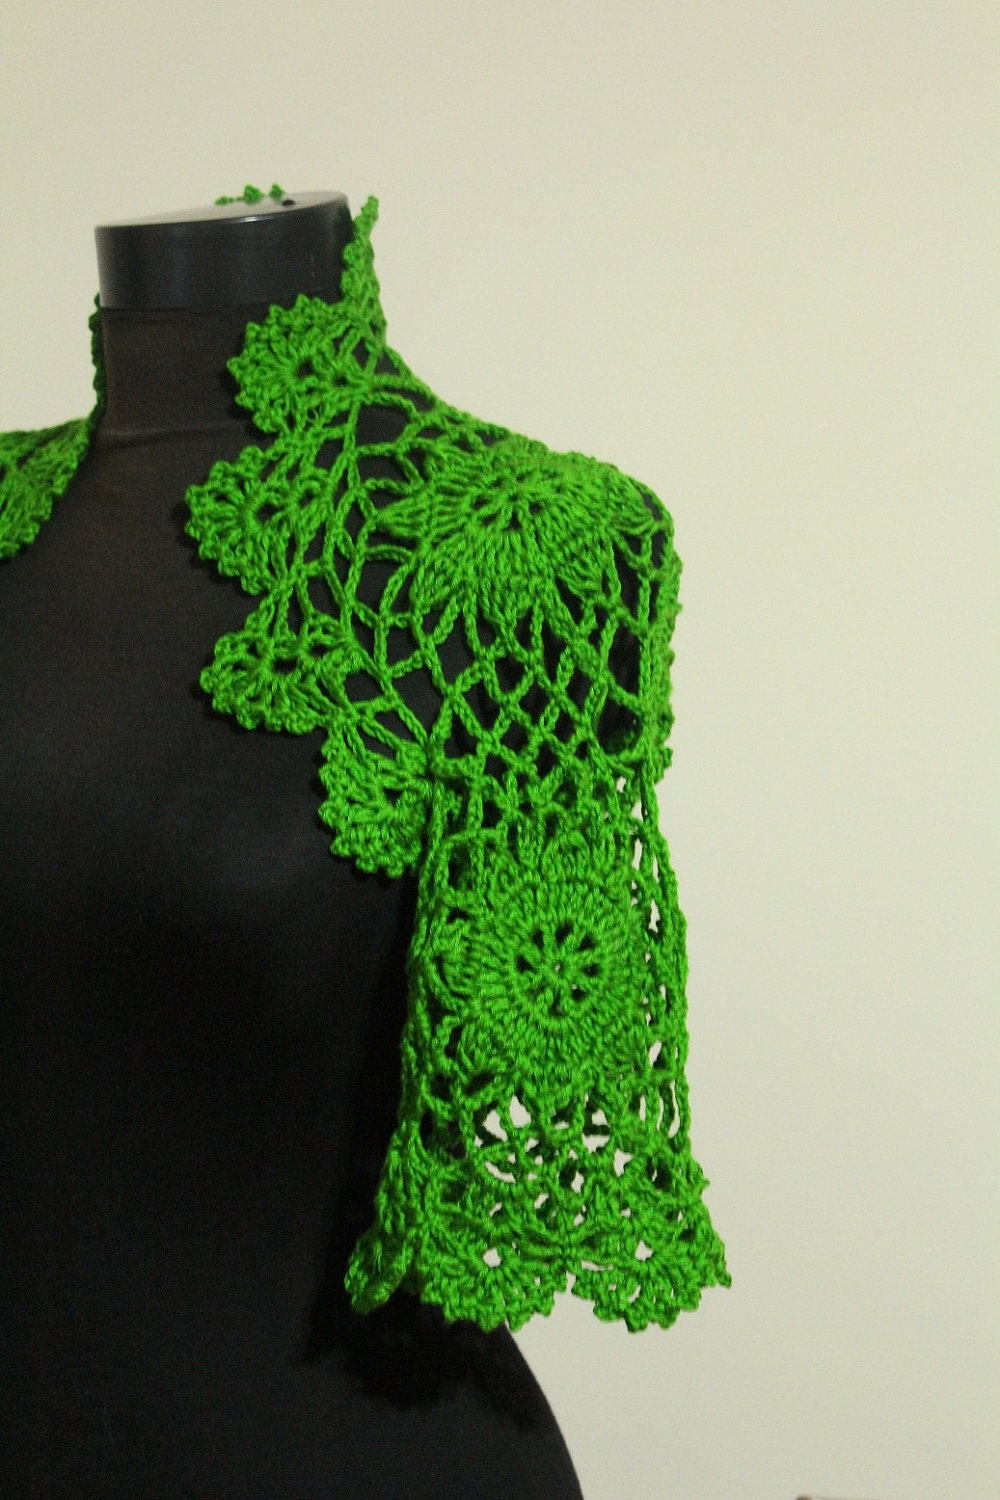 EXPRESS DELIVERY - La Isla Bonita Green Lace Shrug